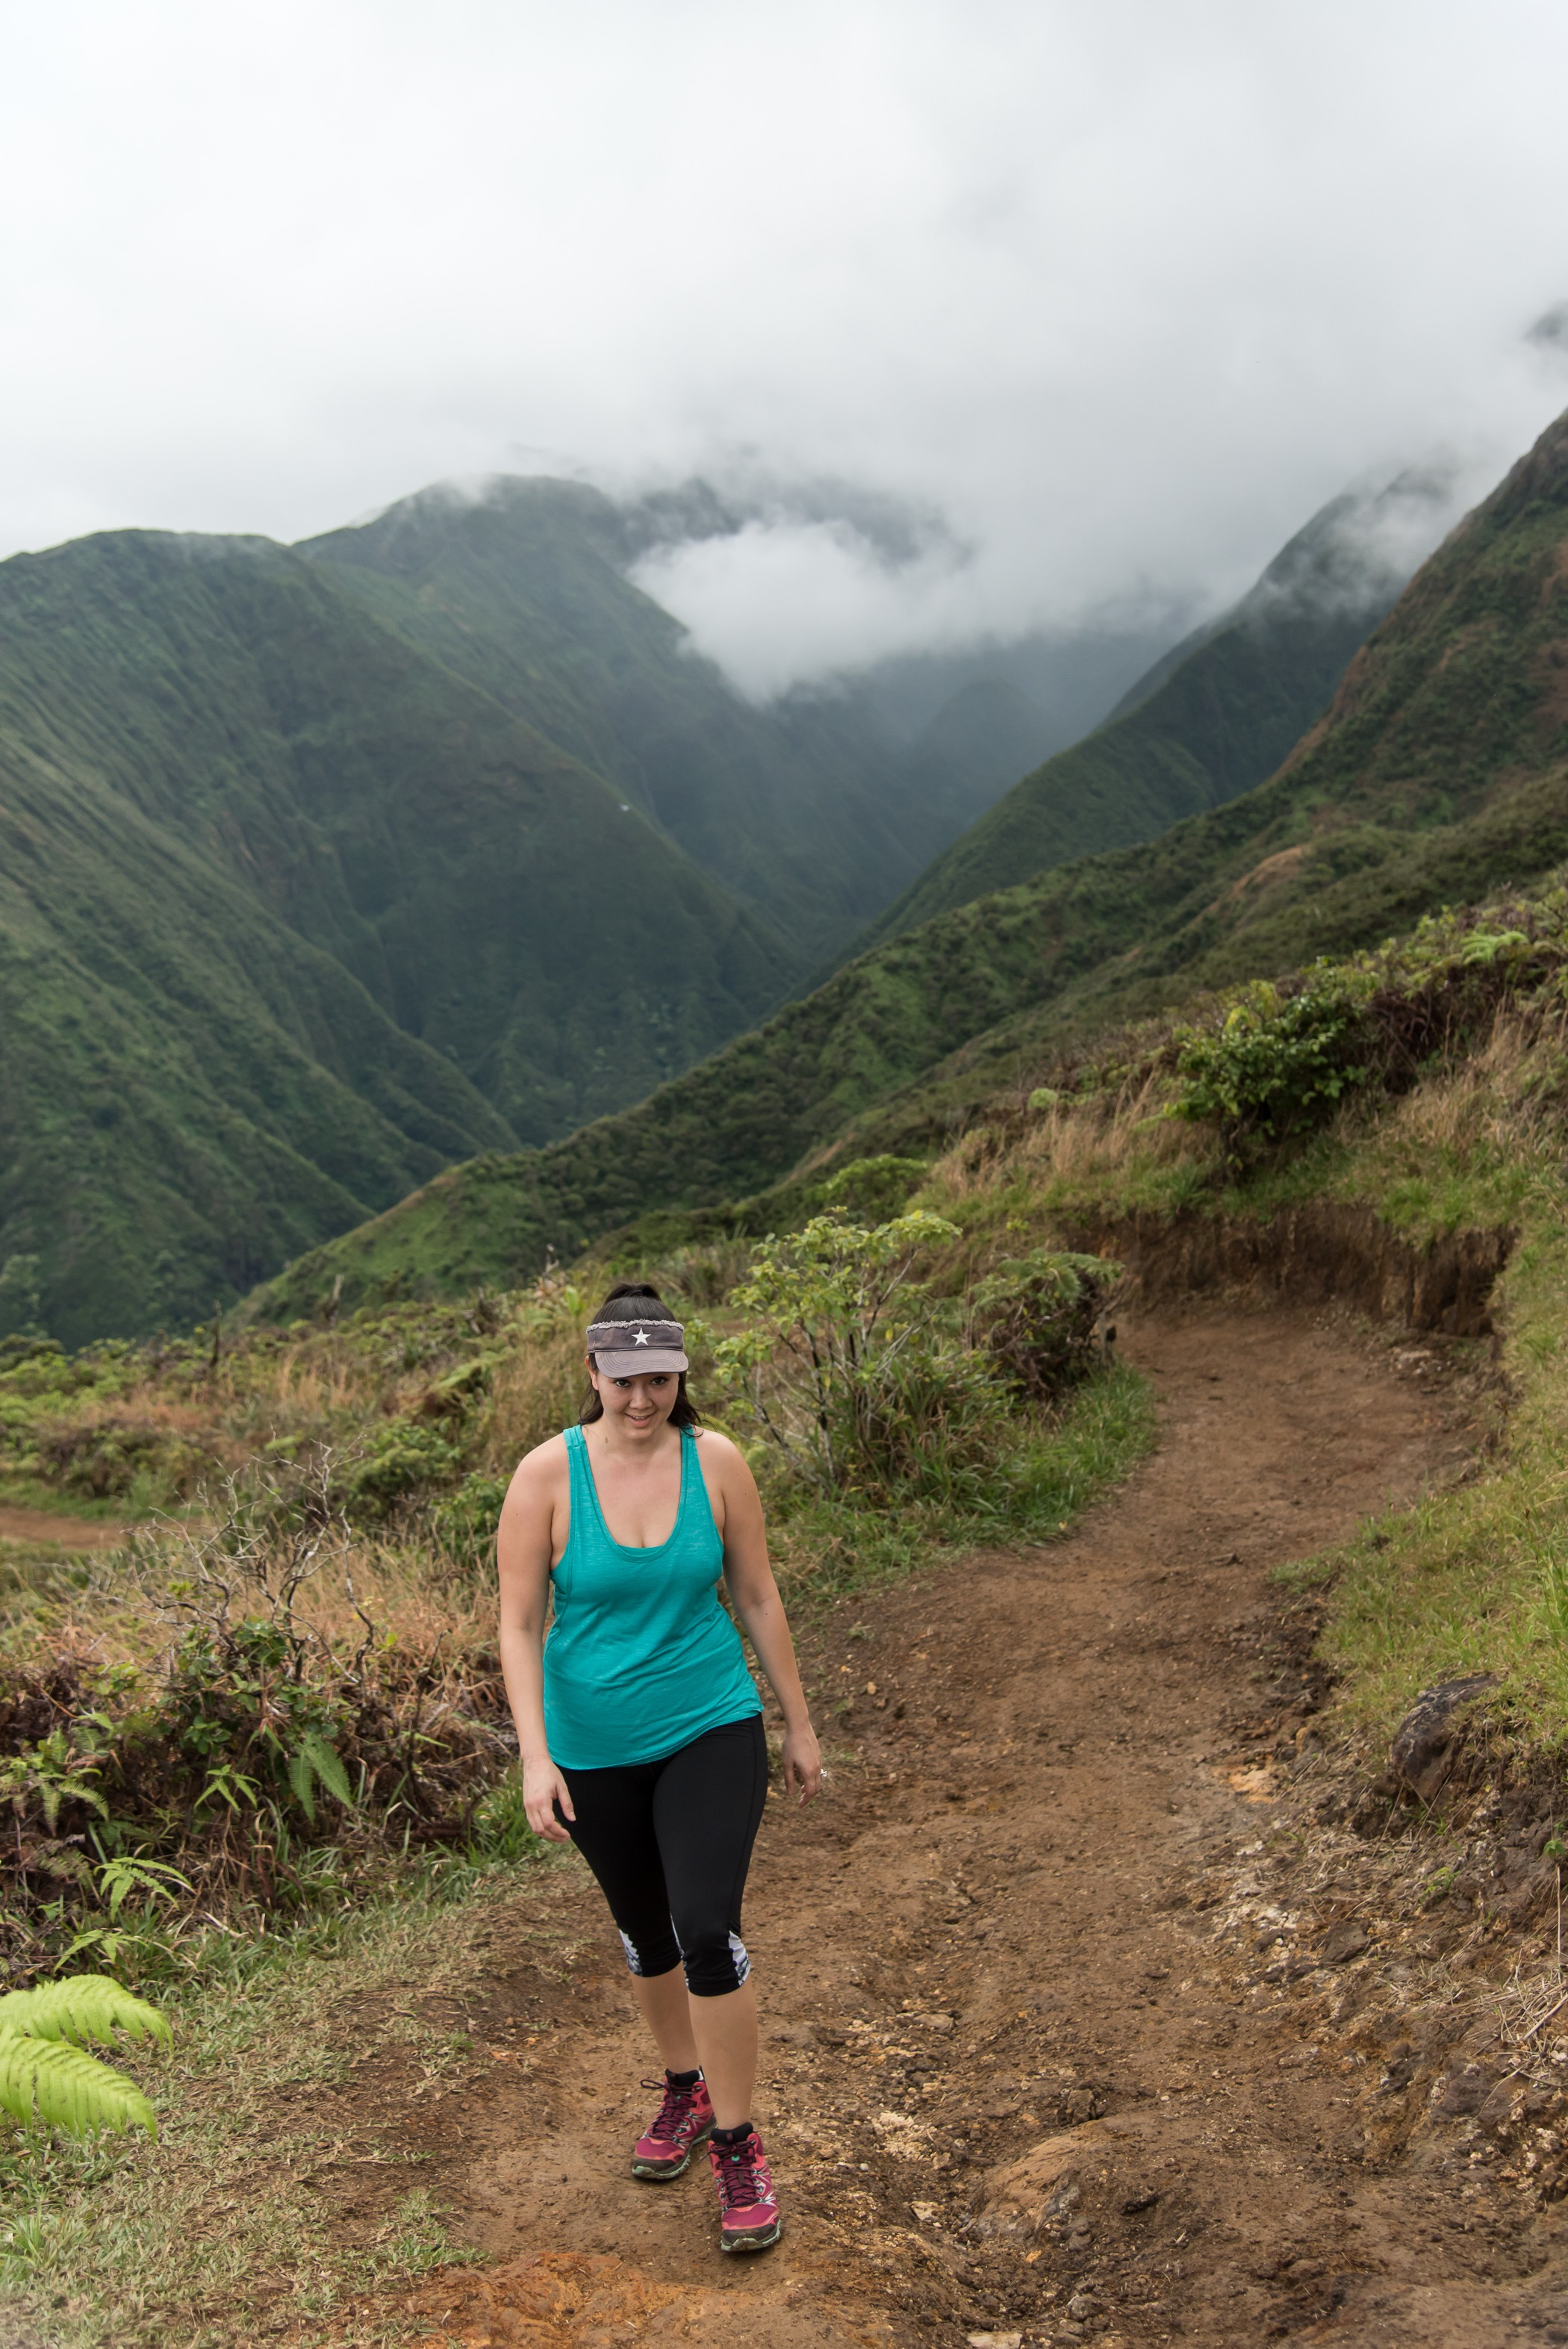 Maui sightseeing, by Travel Blogger What The Fab